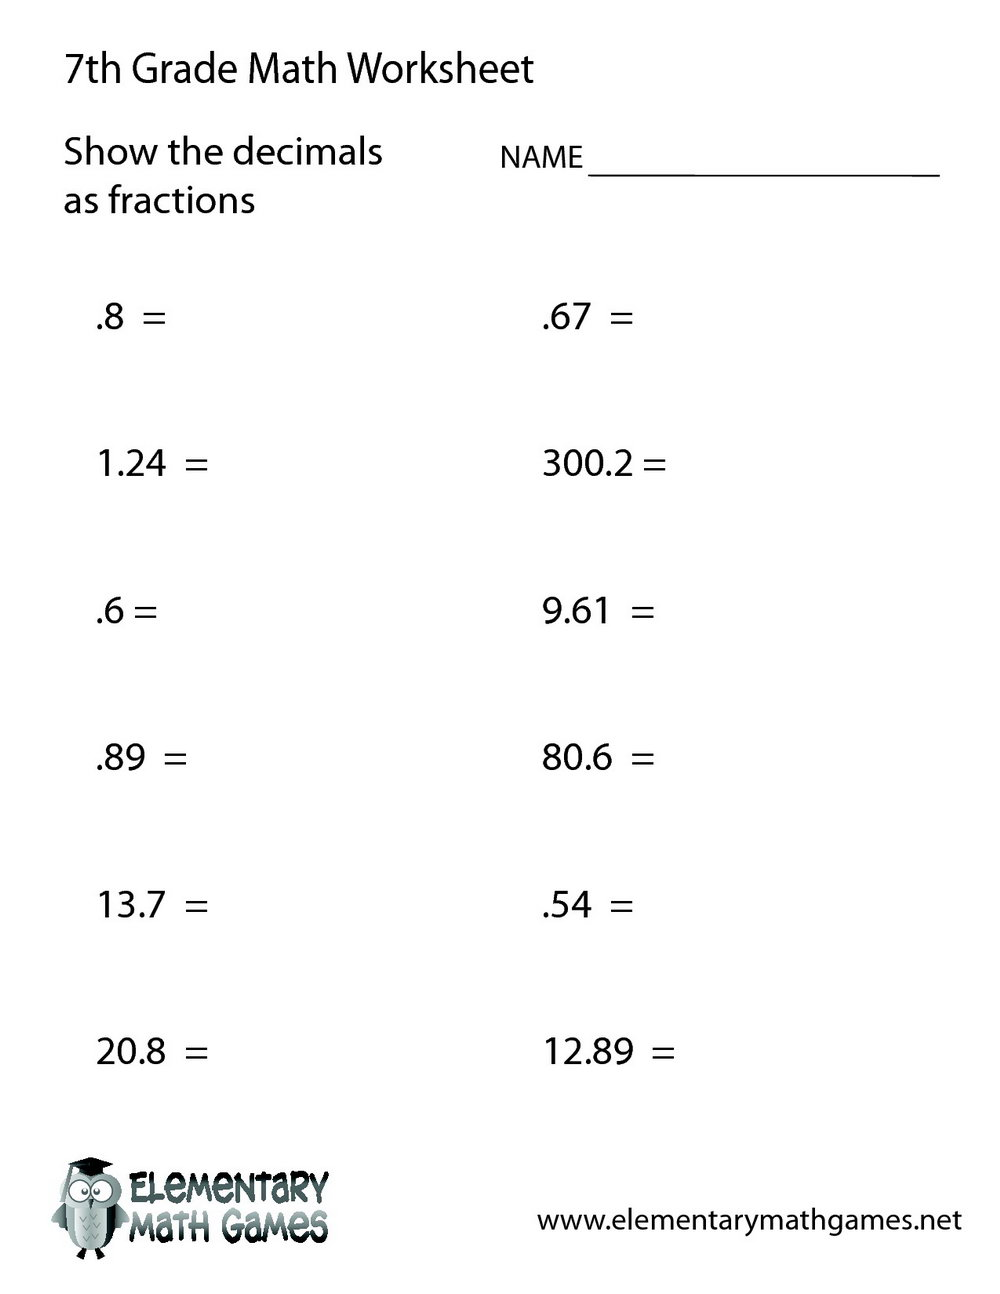 Free Maths Worksheets For Grade 7 With Answers